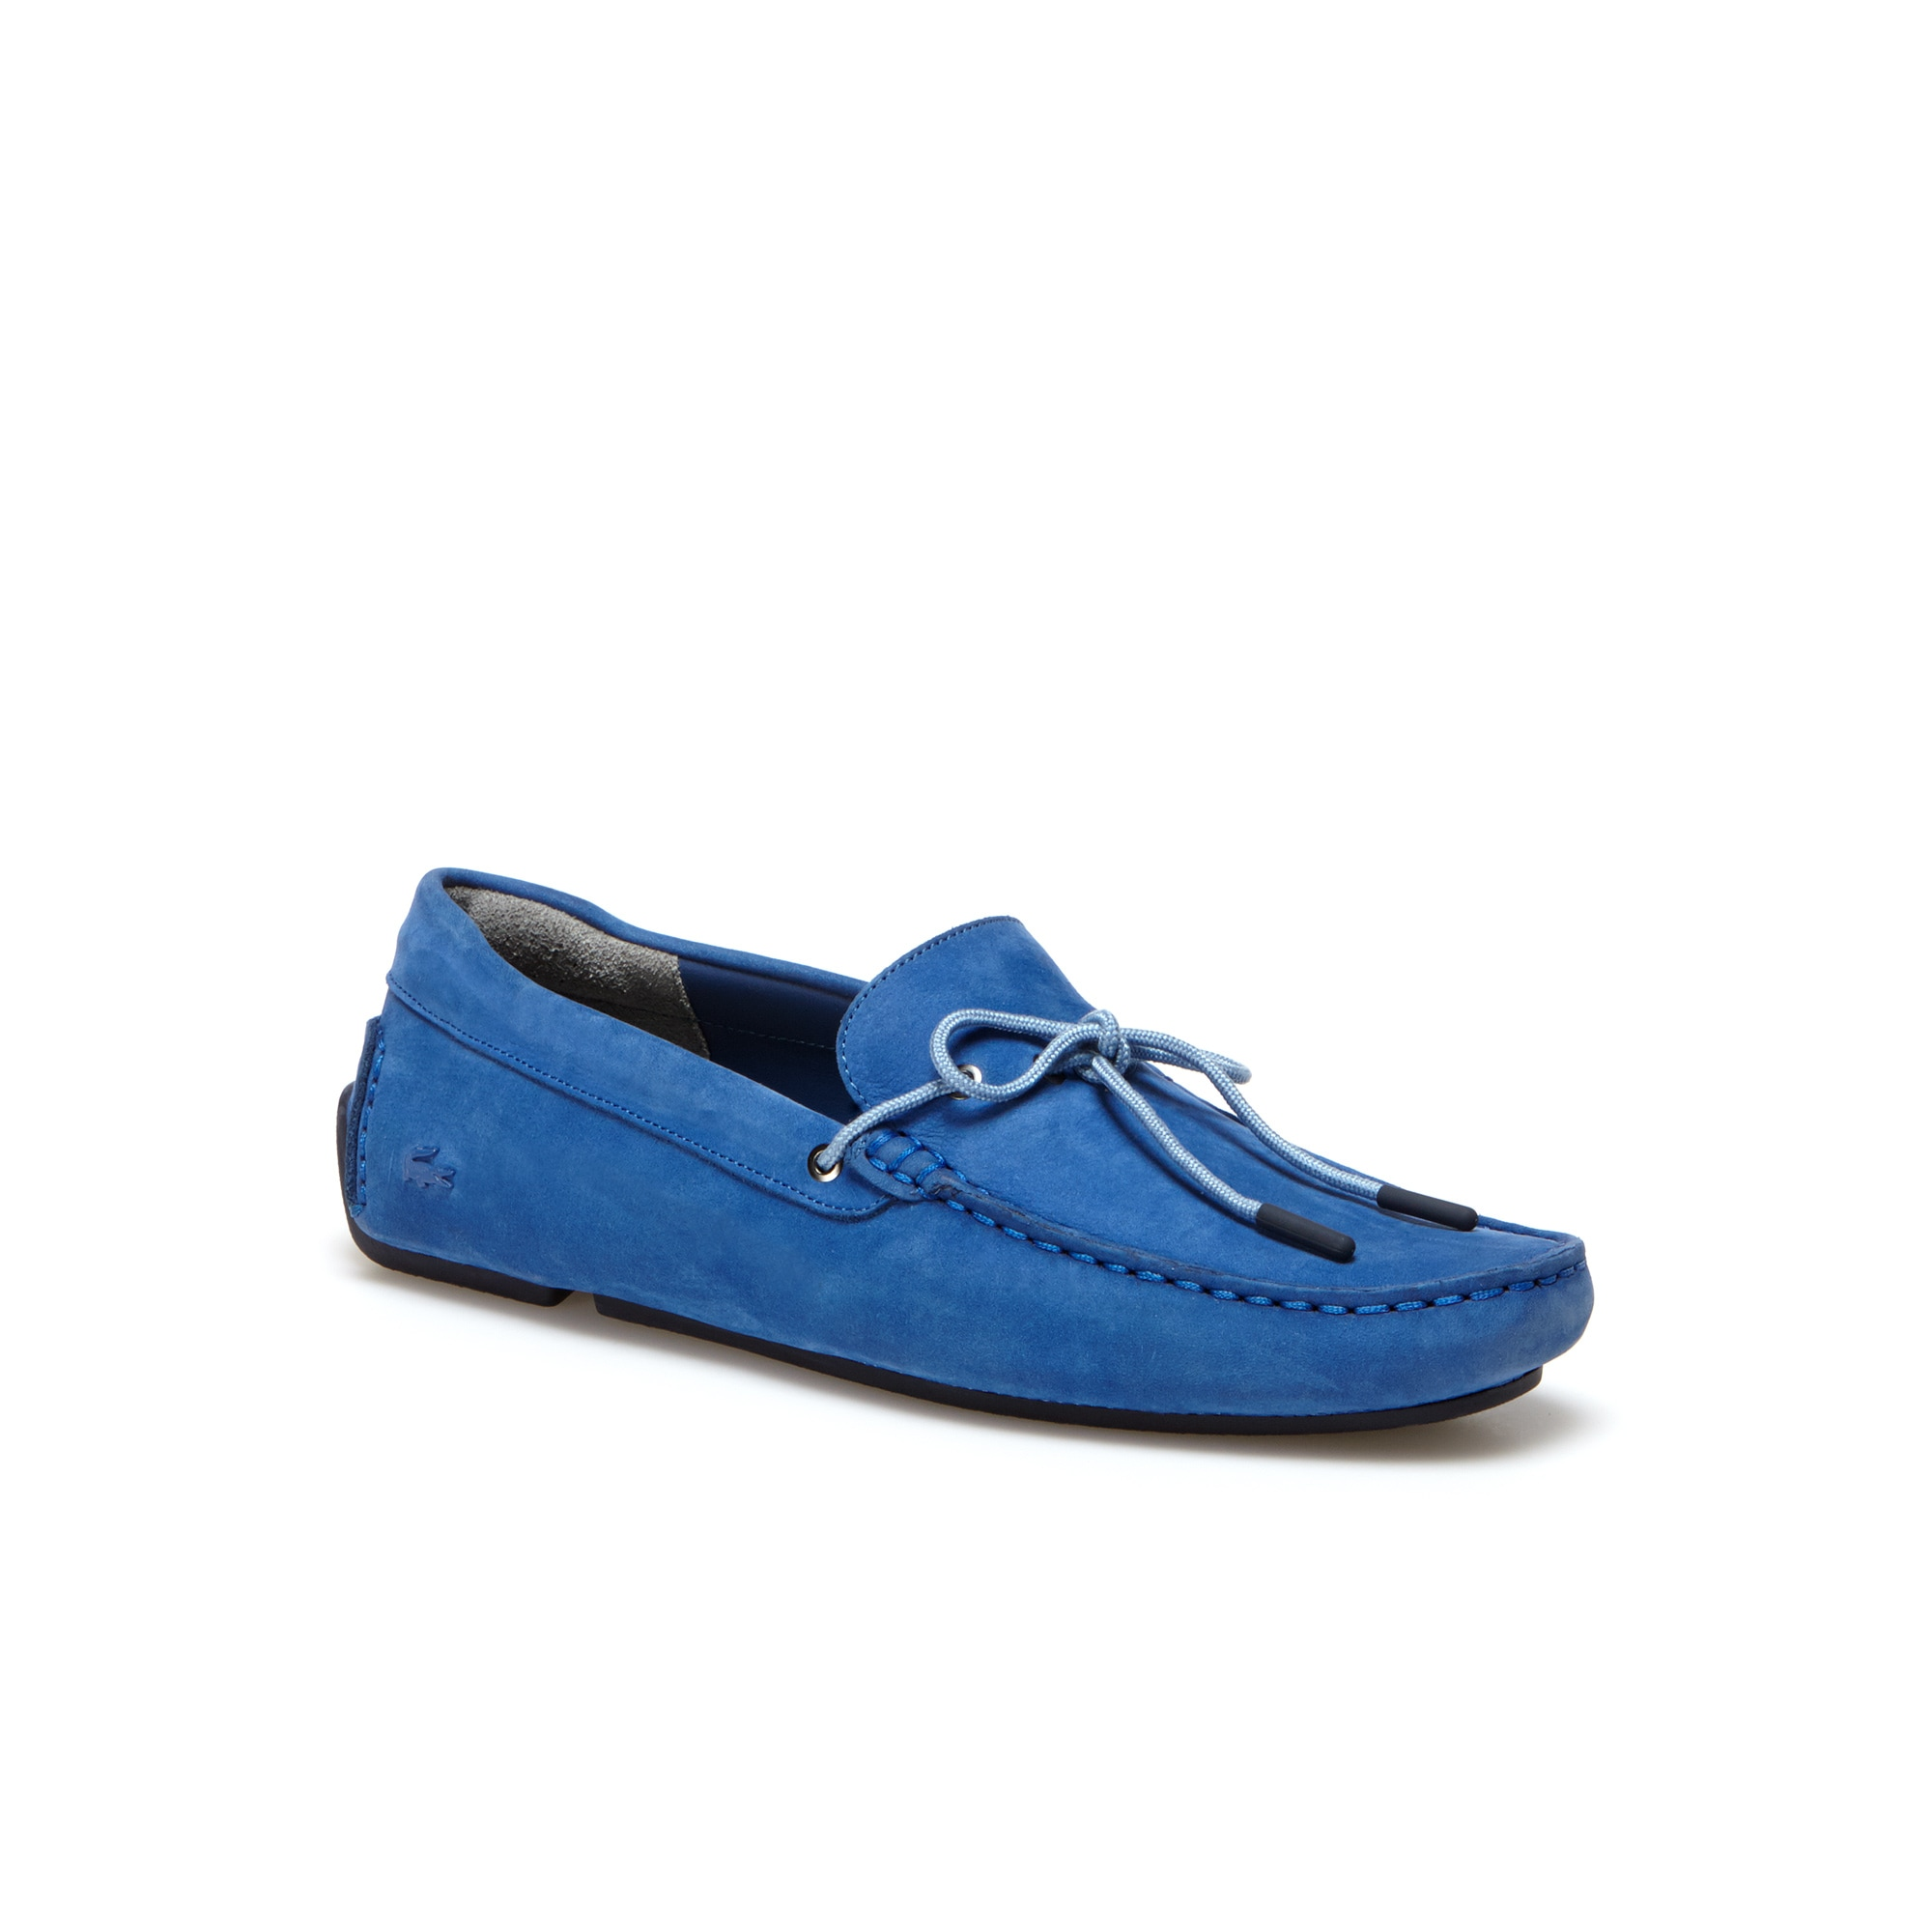 Men's Piloter Corde Suede Loafers